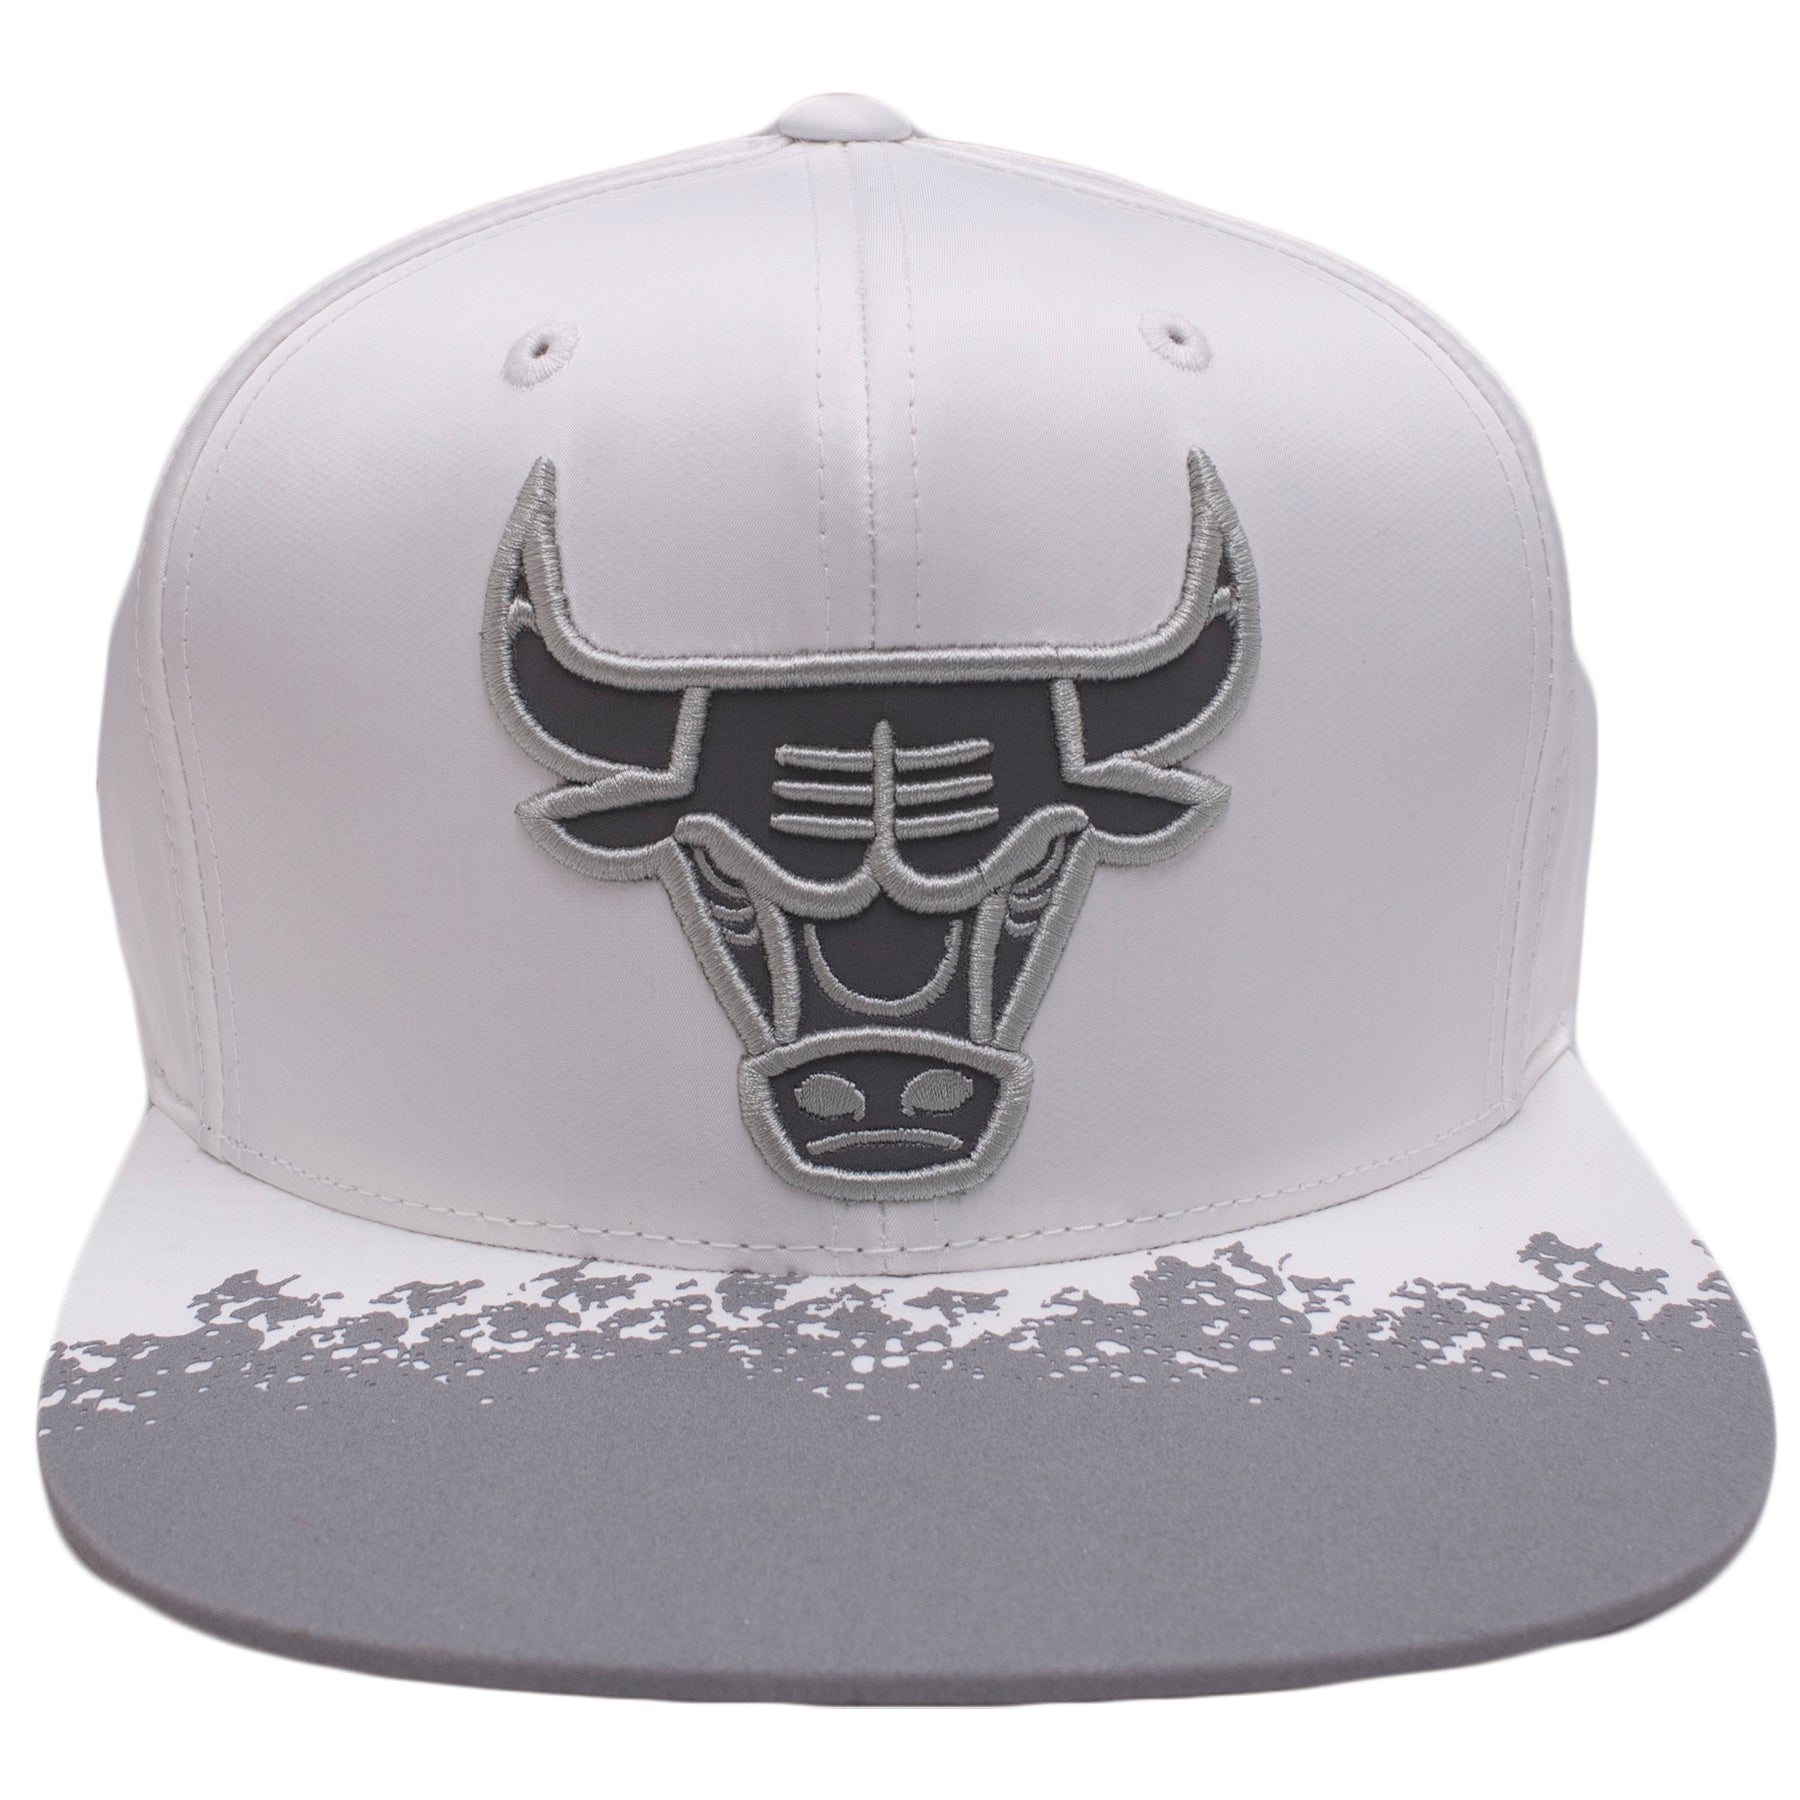 13204bf5167 ... ireland the white chicago bulls reflective lava snapback hat is white  with a gray reflective chicago